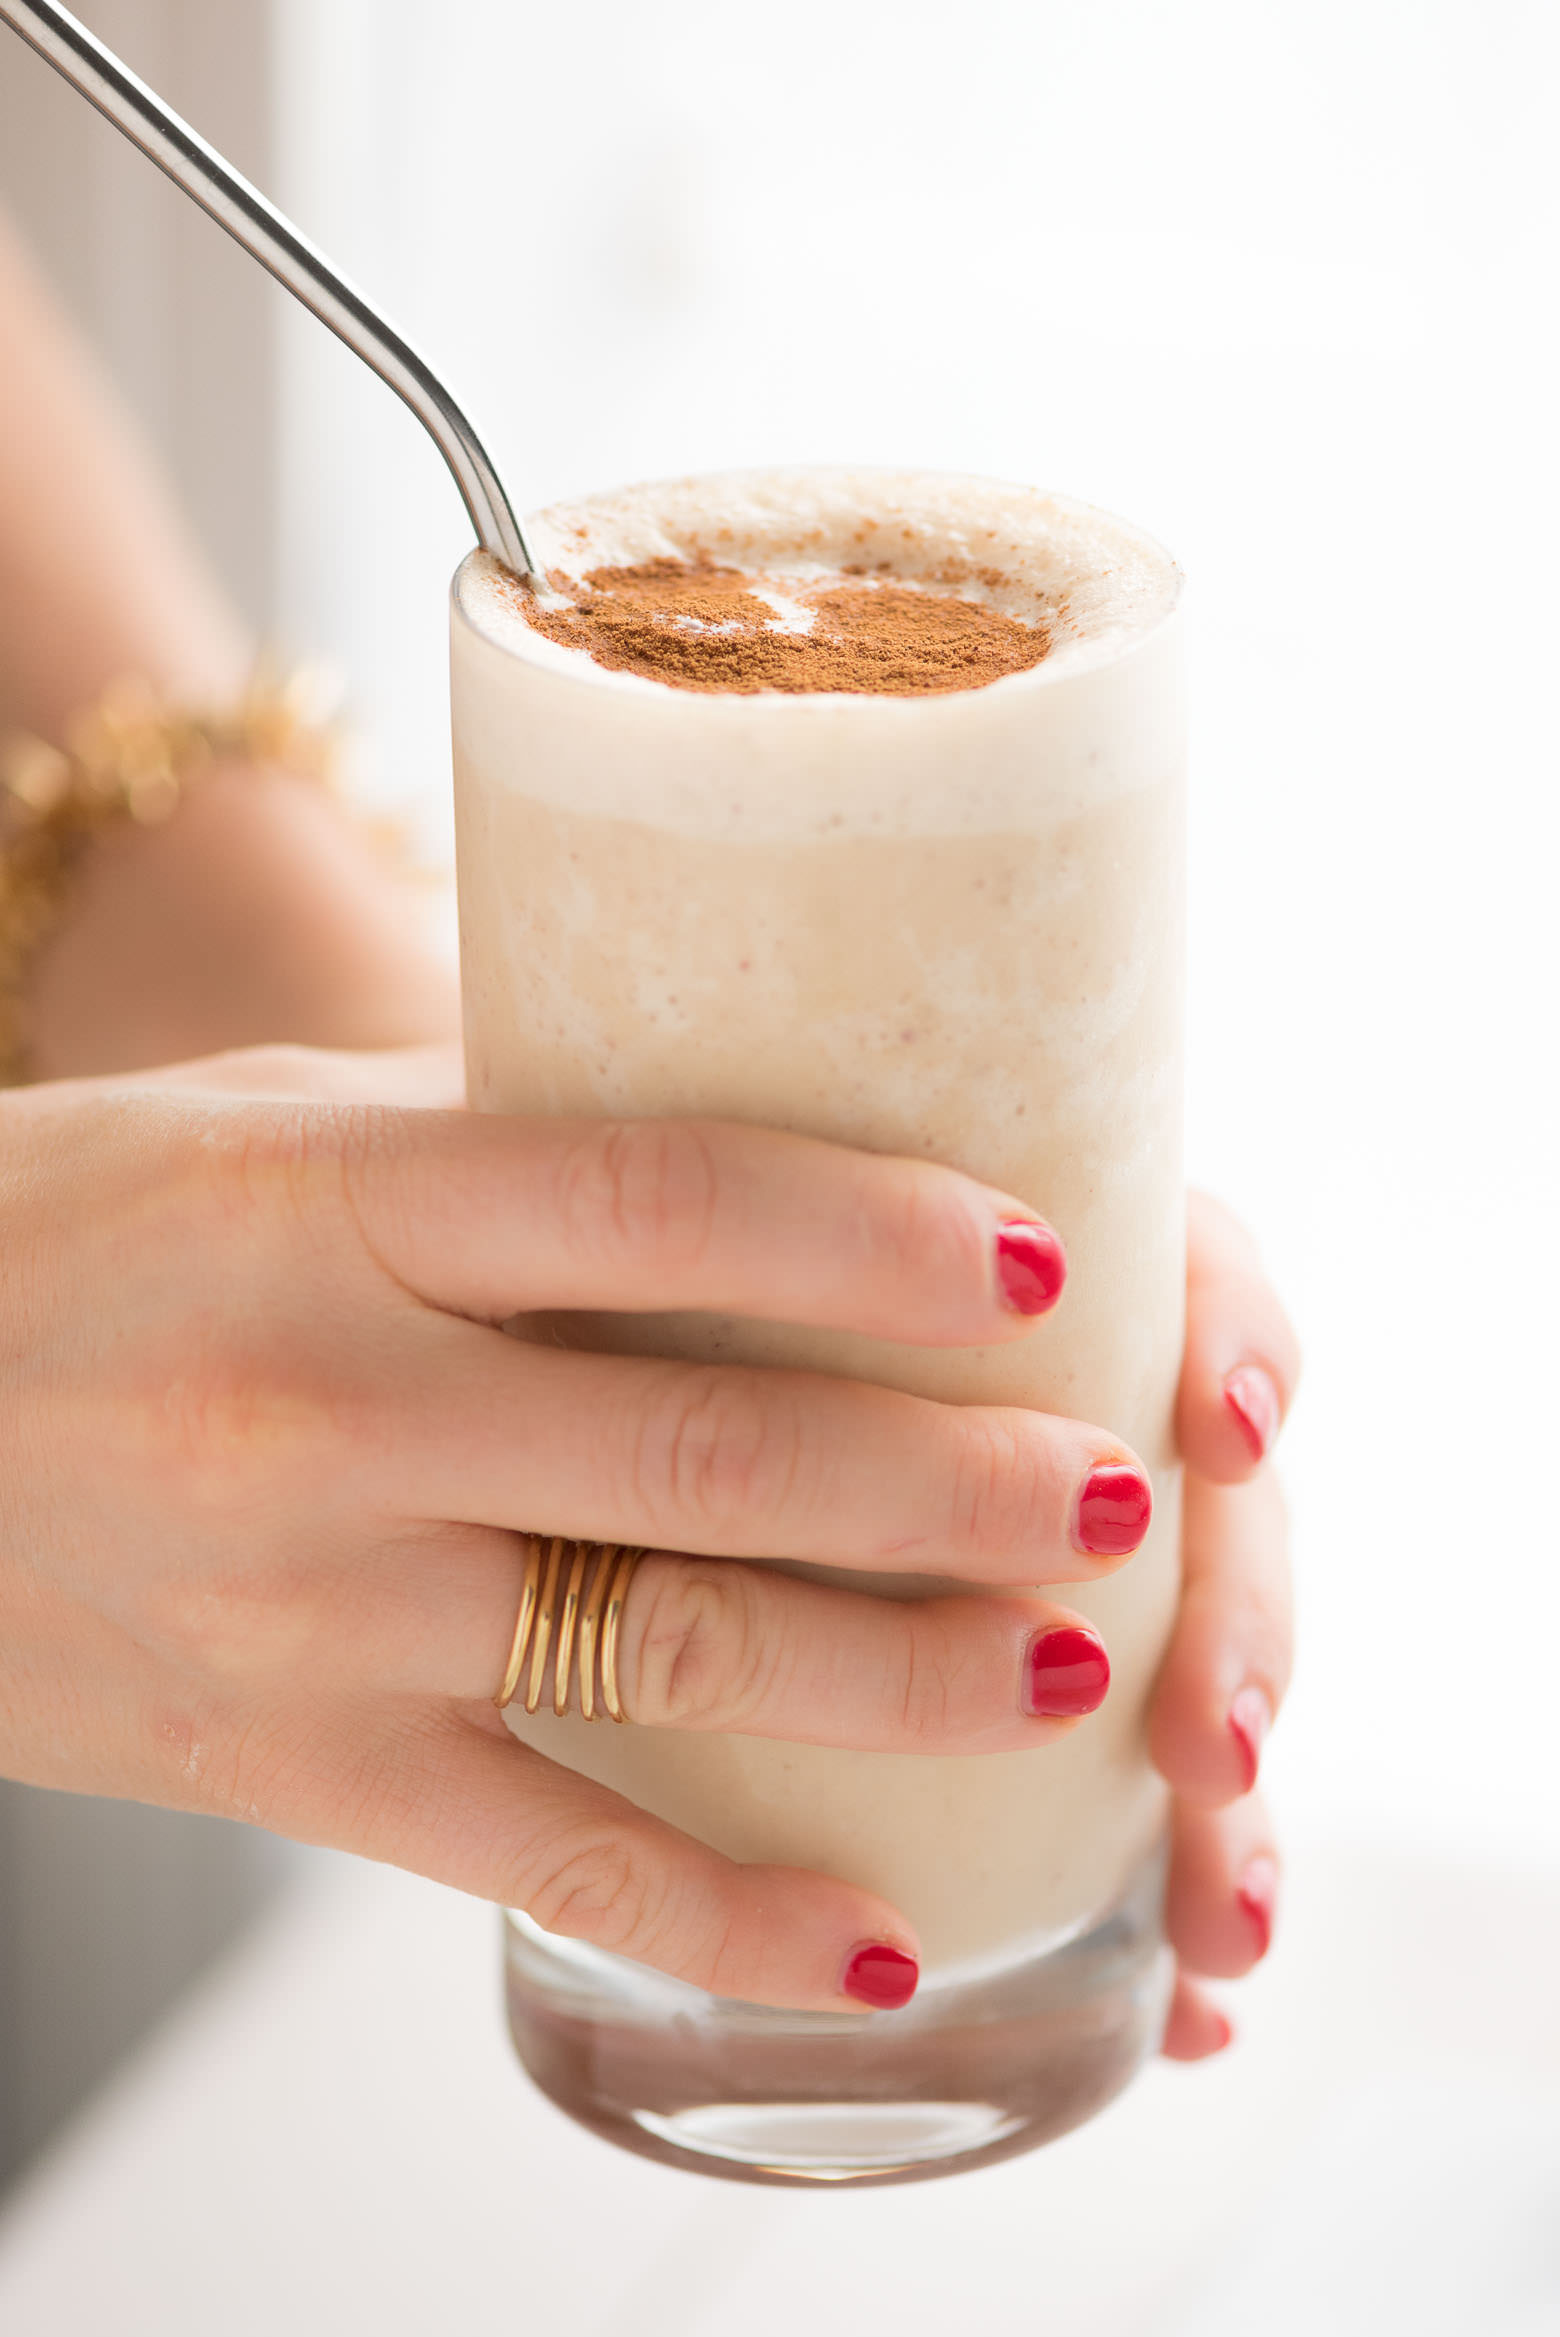 Peanut Butter Oatmeal Apple Smoothie